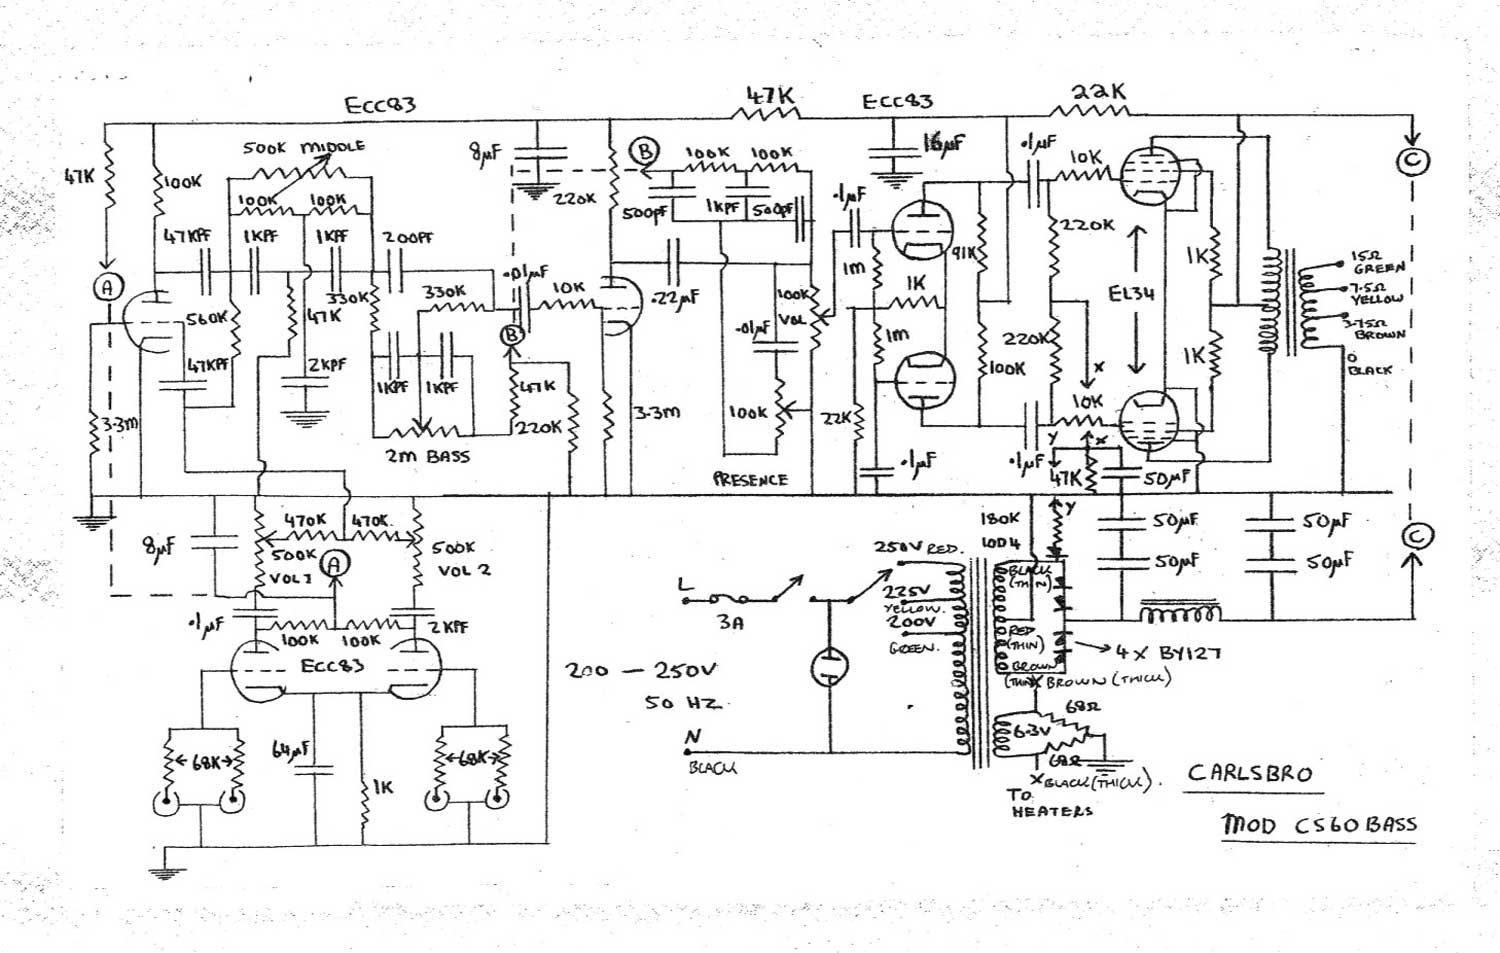 hight resolution of ec 256 electric guitar wiring diagrams electric guitar 3 way wiring diagrams electric guitar wiring diagrams